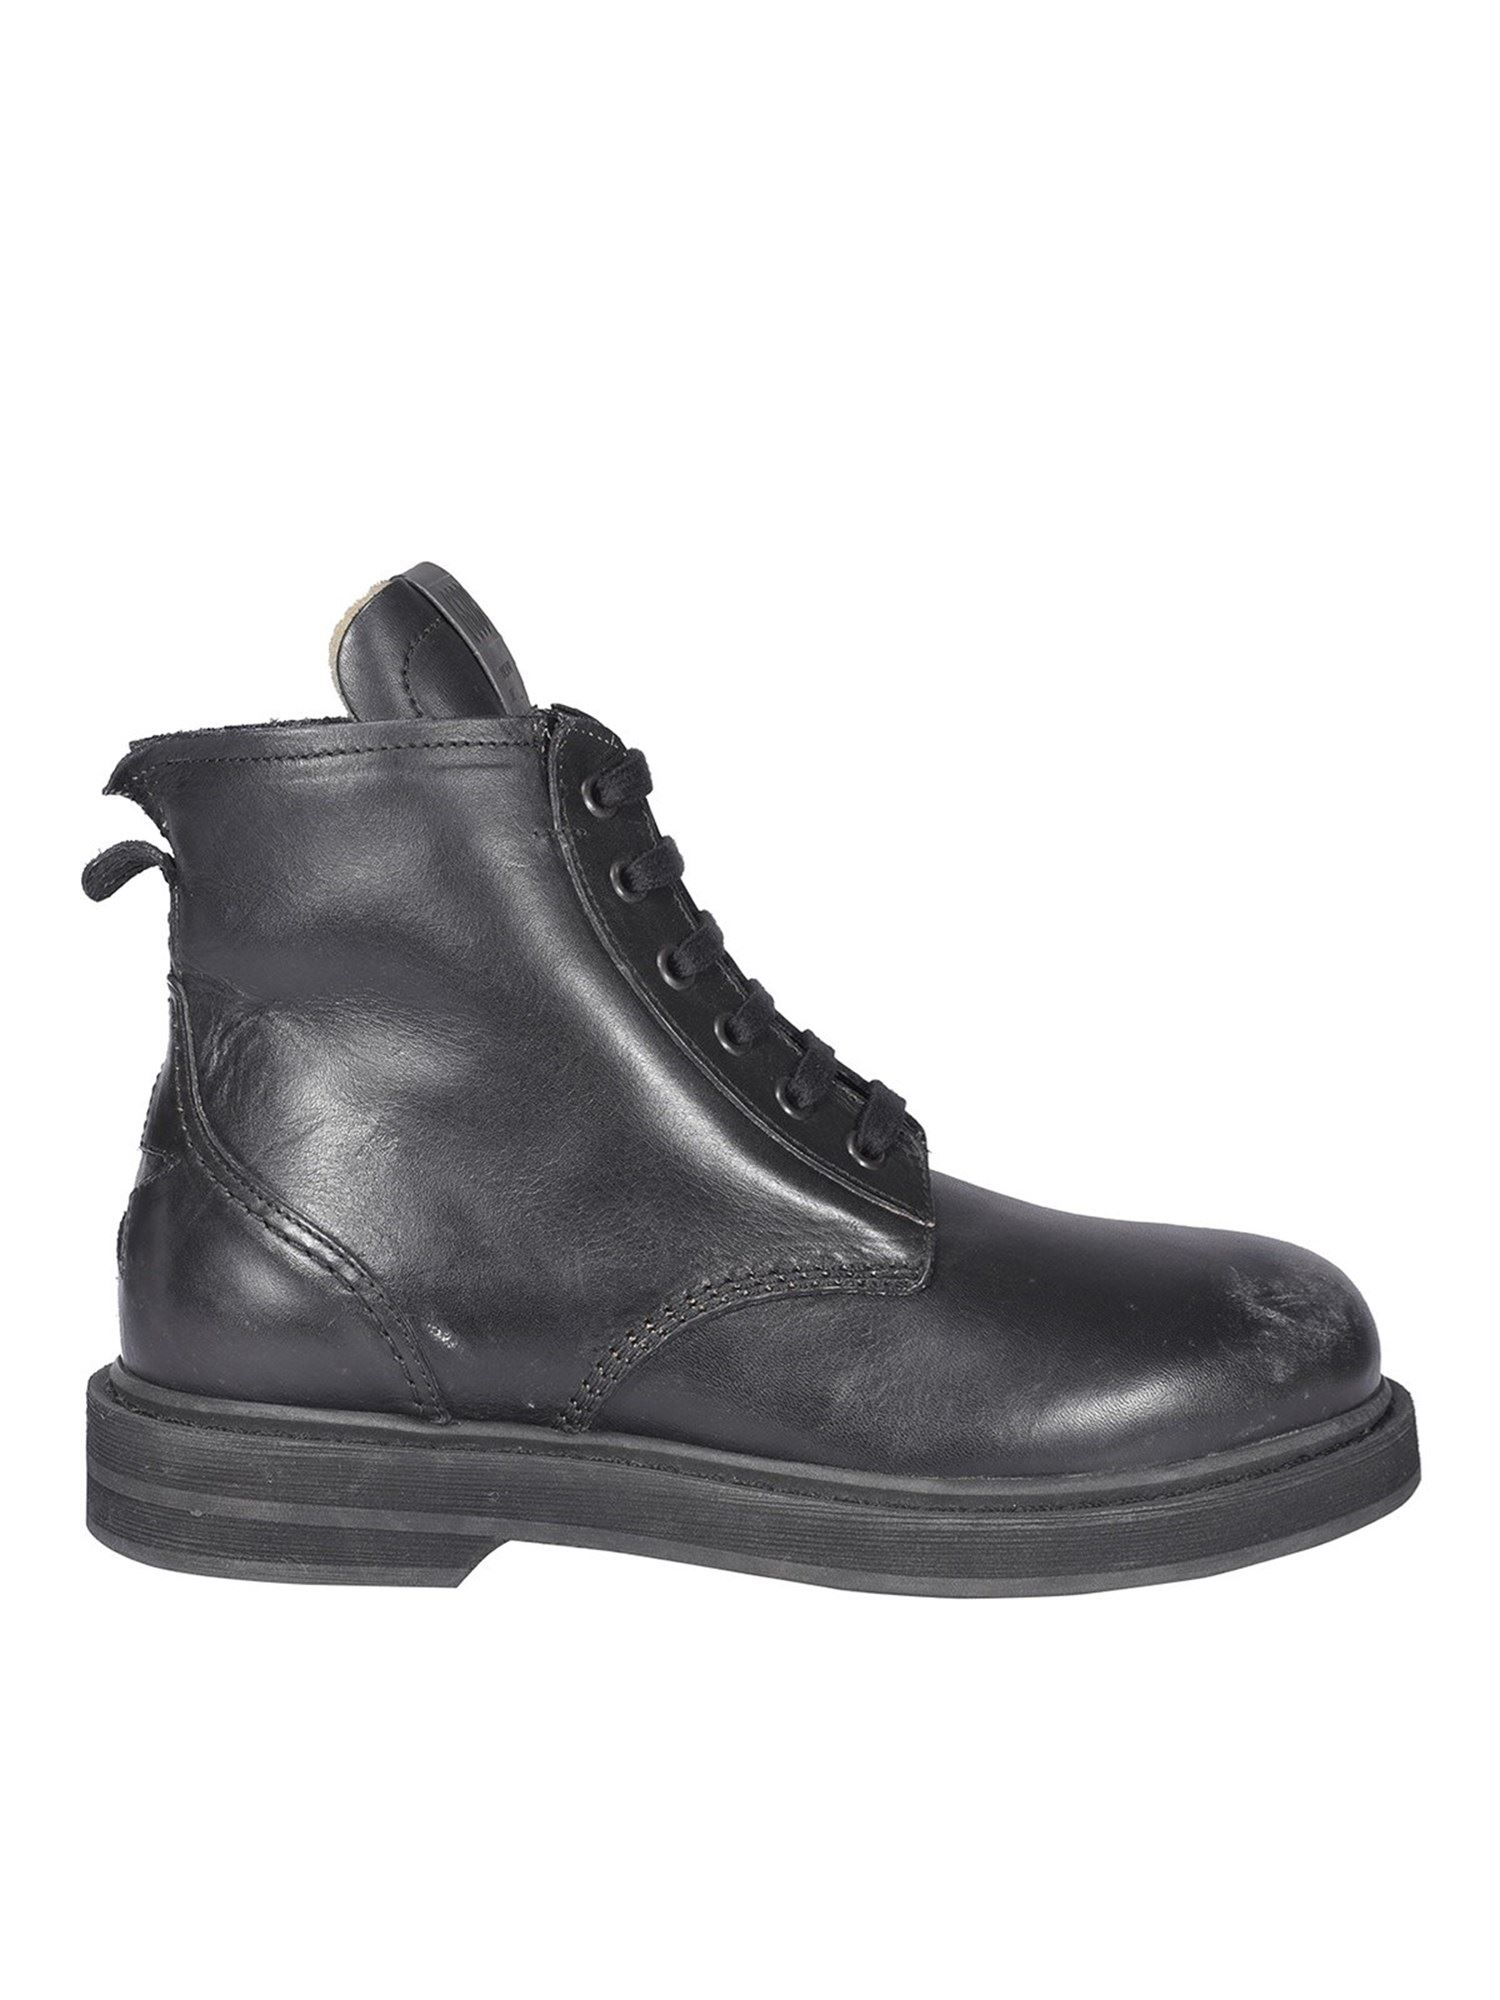 Golden Goose Leathers DISTRESSED EFFECT COMBAT BOOTS IN BLACK